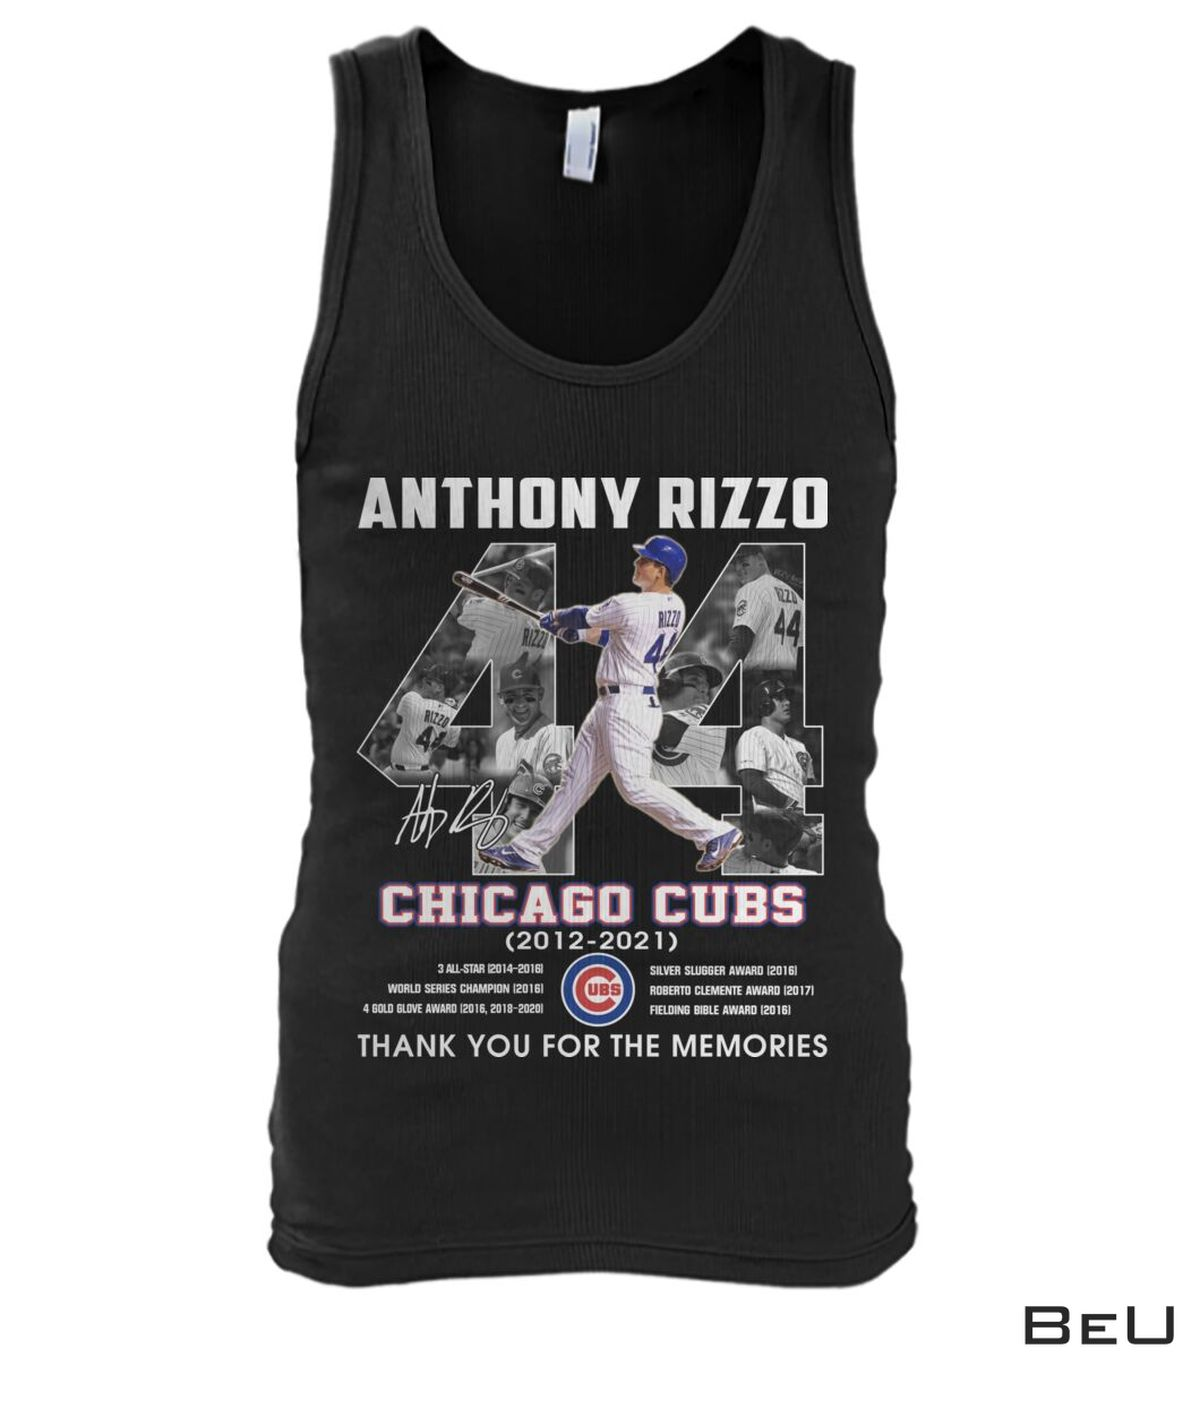 New Anthony Rizzo 44 Years Chicago Cubs Thank You Shirt, hoodie, tank top